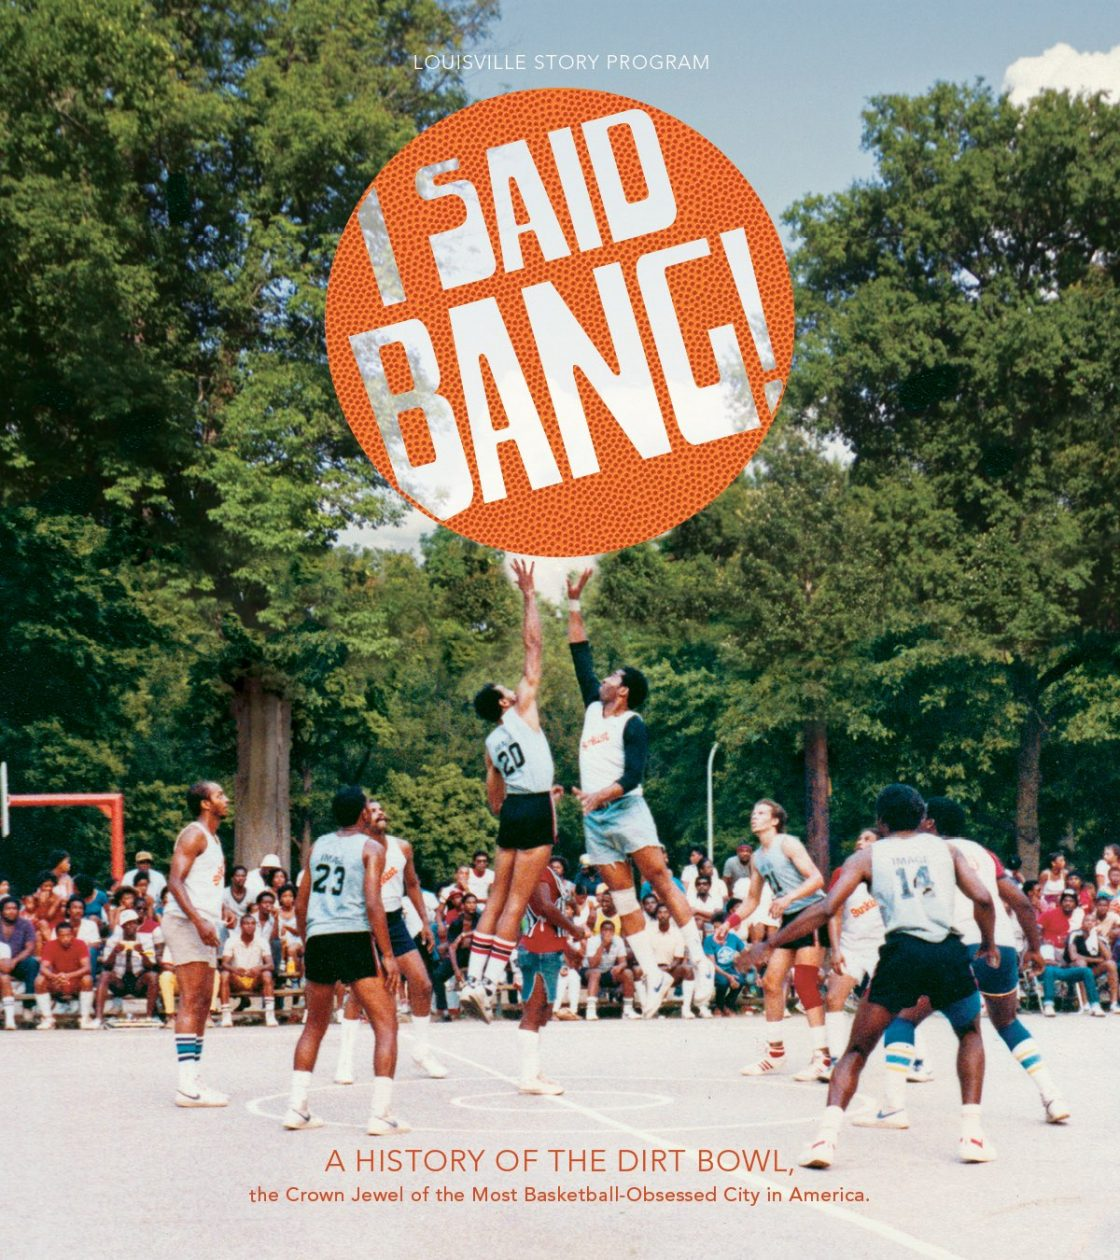 I Said Bang!: A History of the Dirt Bowl